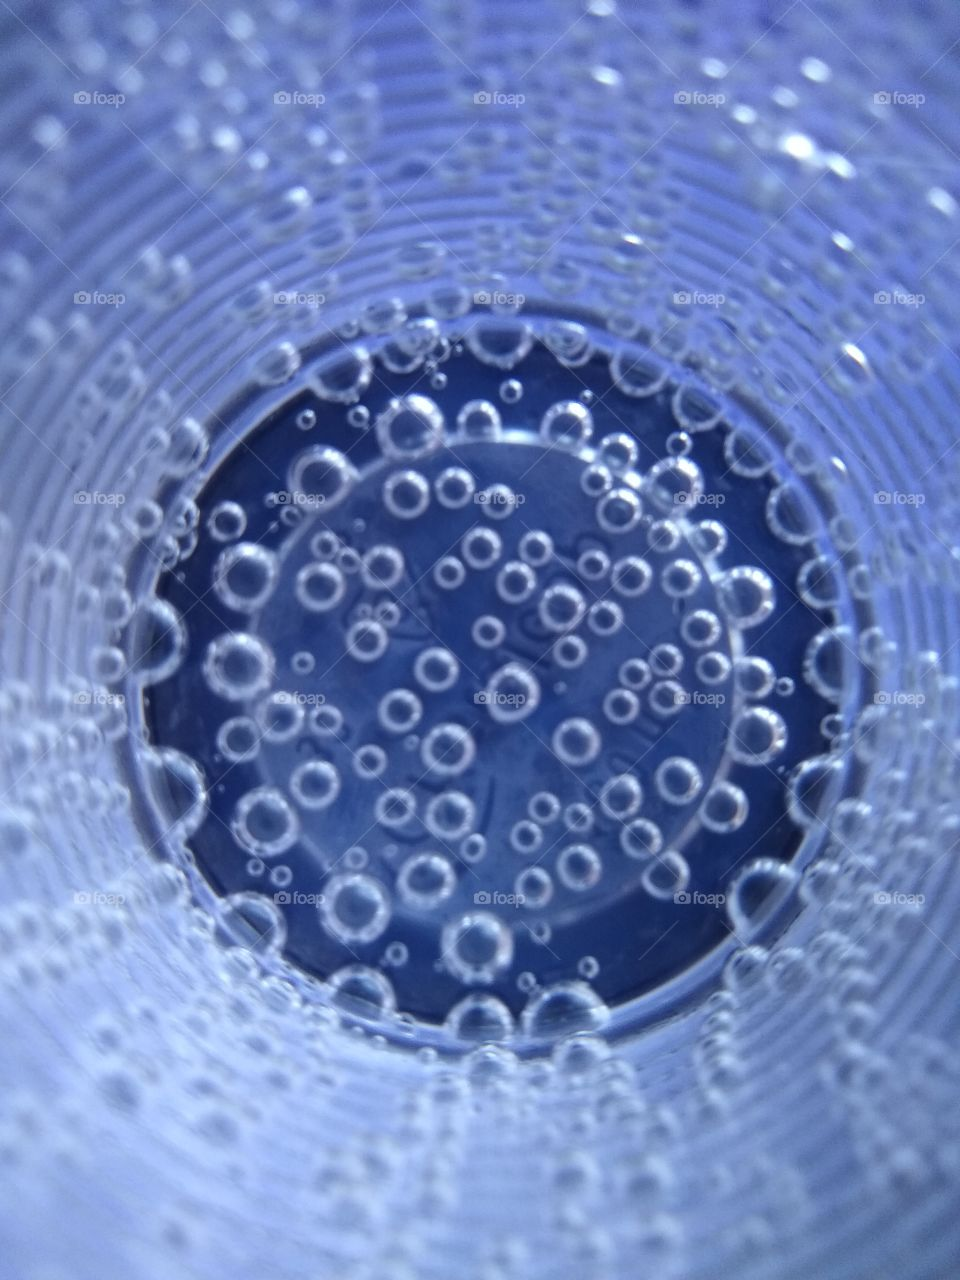 Bubbles in the glass of water